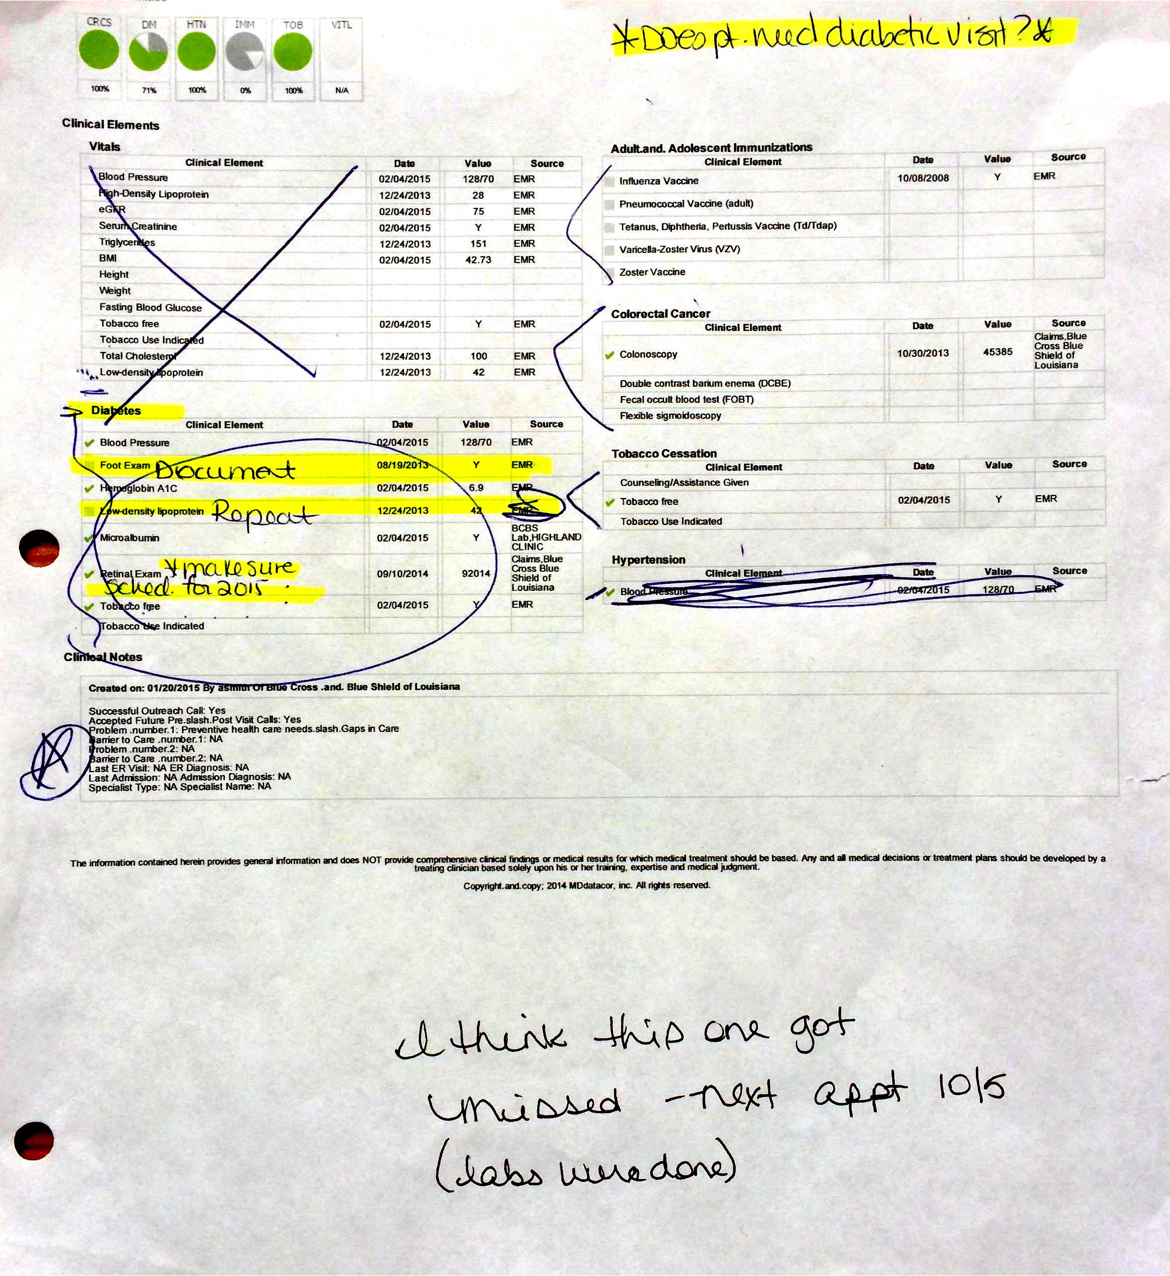 An example of a report that doctors previously had to fill out.